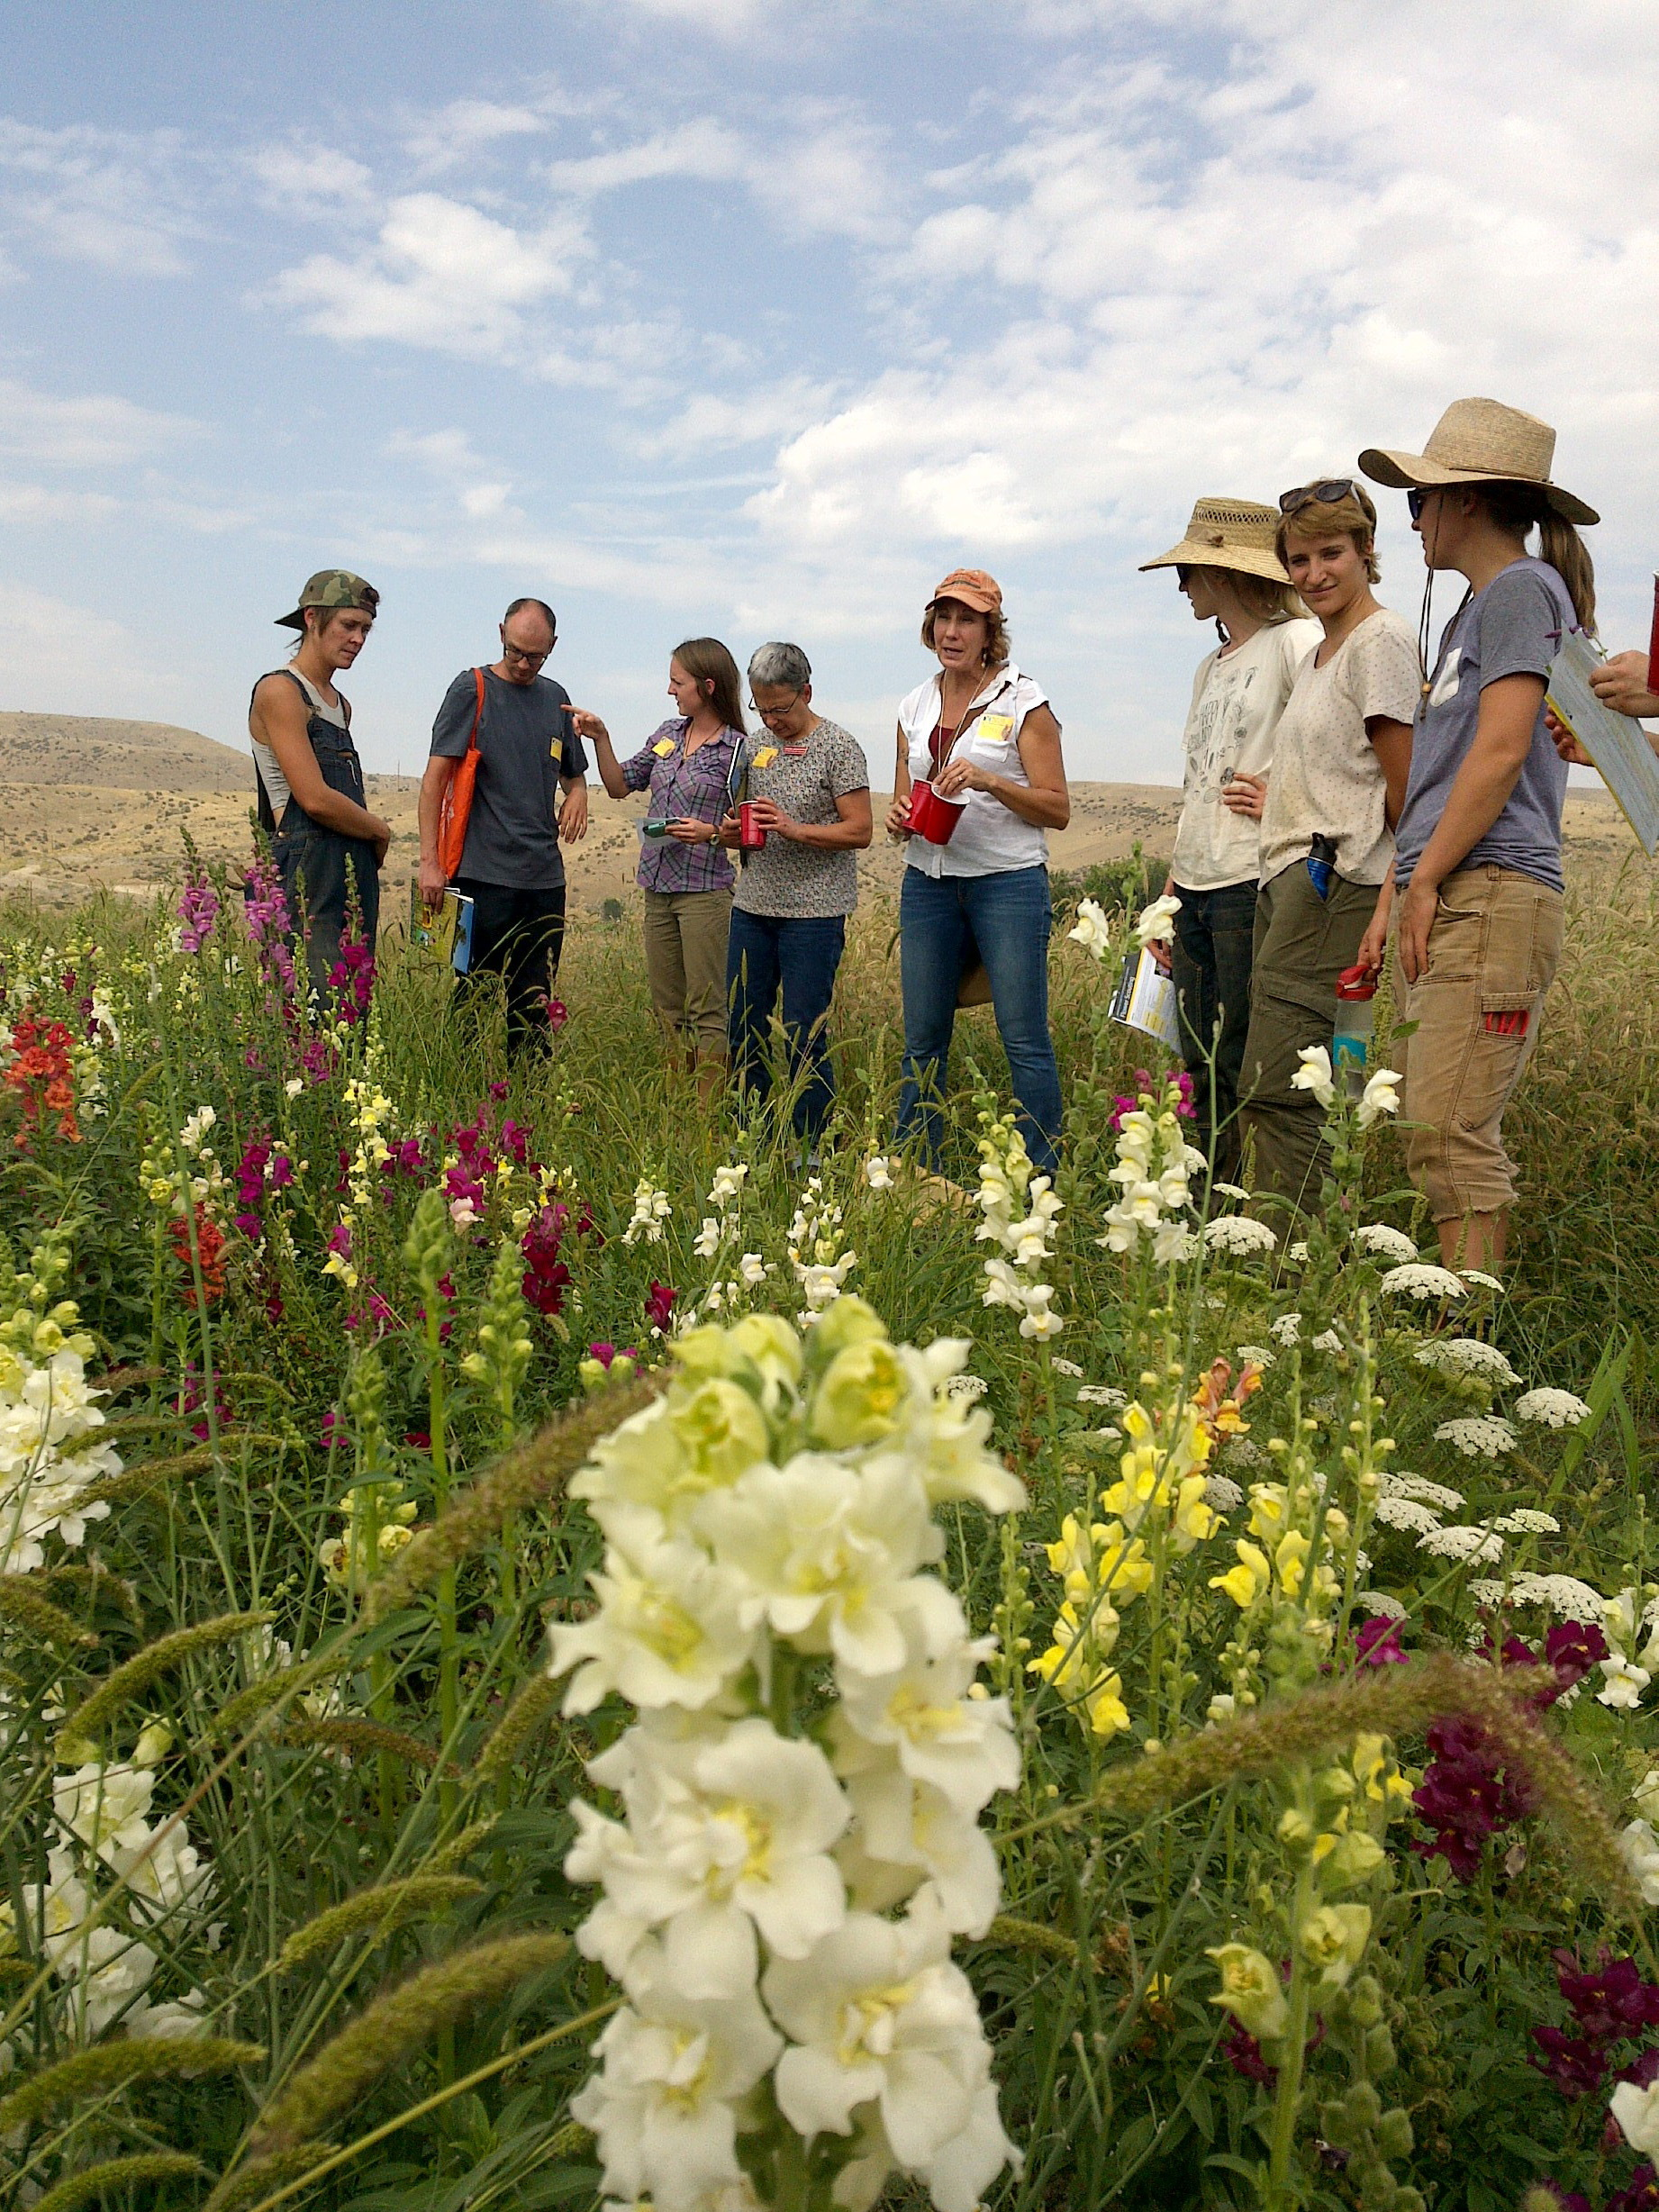 A group of people gathers around a colorful planting of assorted flowers.